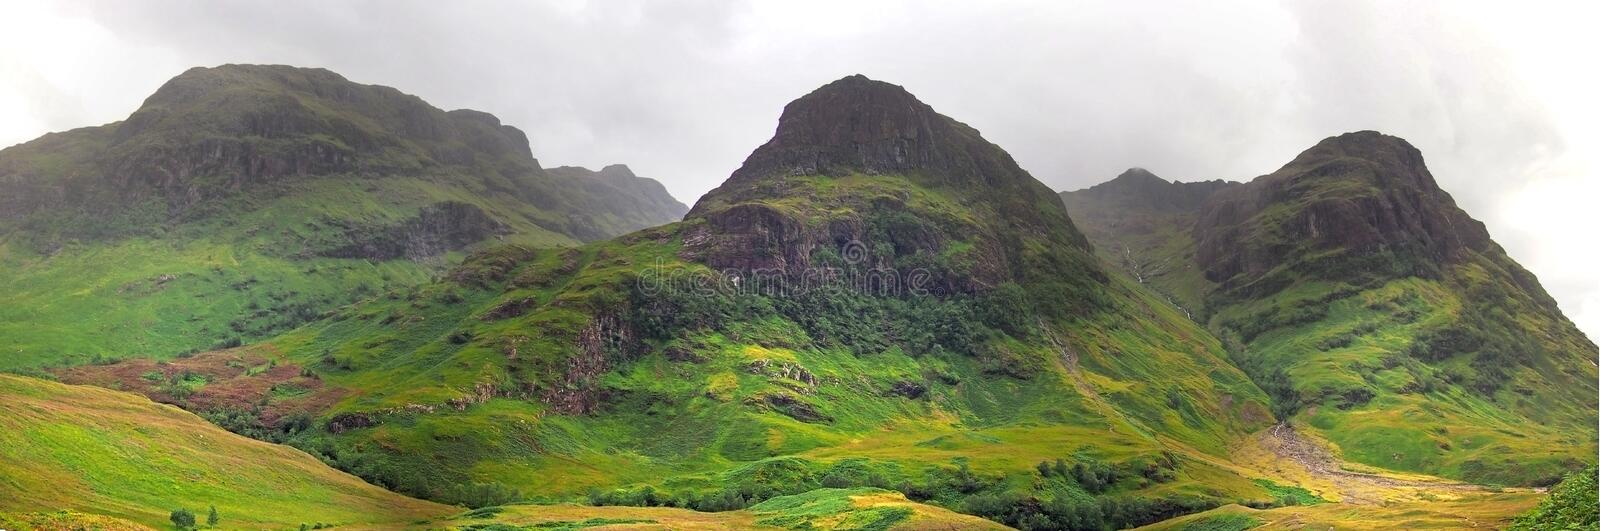 Download Highlands Valley Of Scotland With Mountains Royalty Free Stock Photography - Image: 31746577